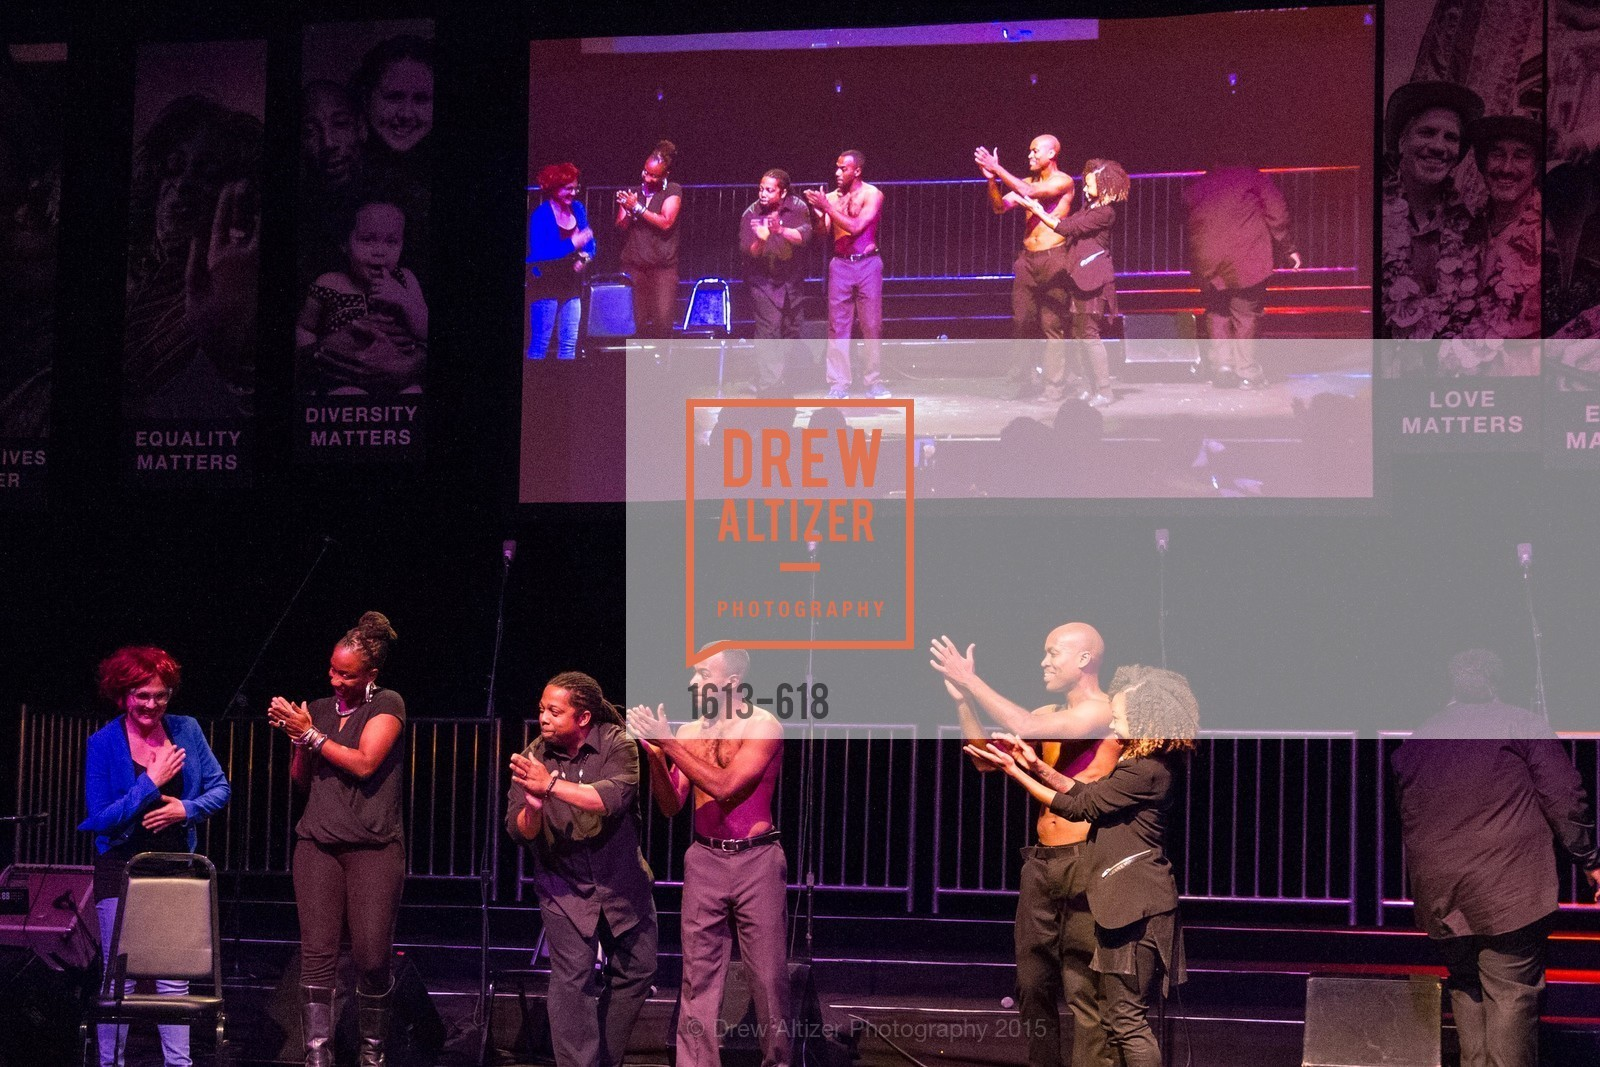 Performance, GLIDE's Annual Holiday Jam: Love Matters, The Warfield Theatre. 982 Market, December 3rd, 2015,Drew Altizer, Drew Altizer Photography, full-service event agency, private events, San Francisco photographer, photographer California